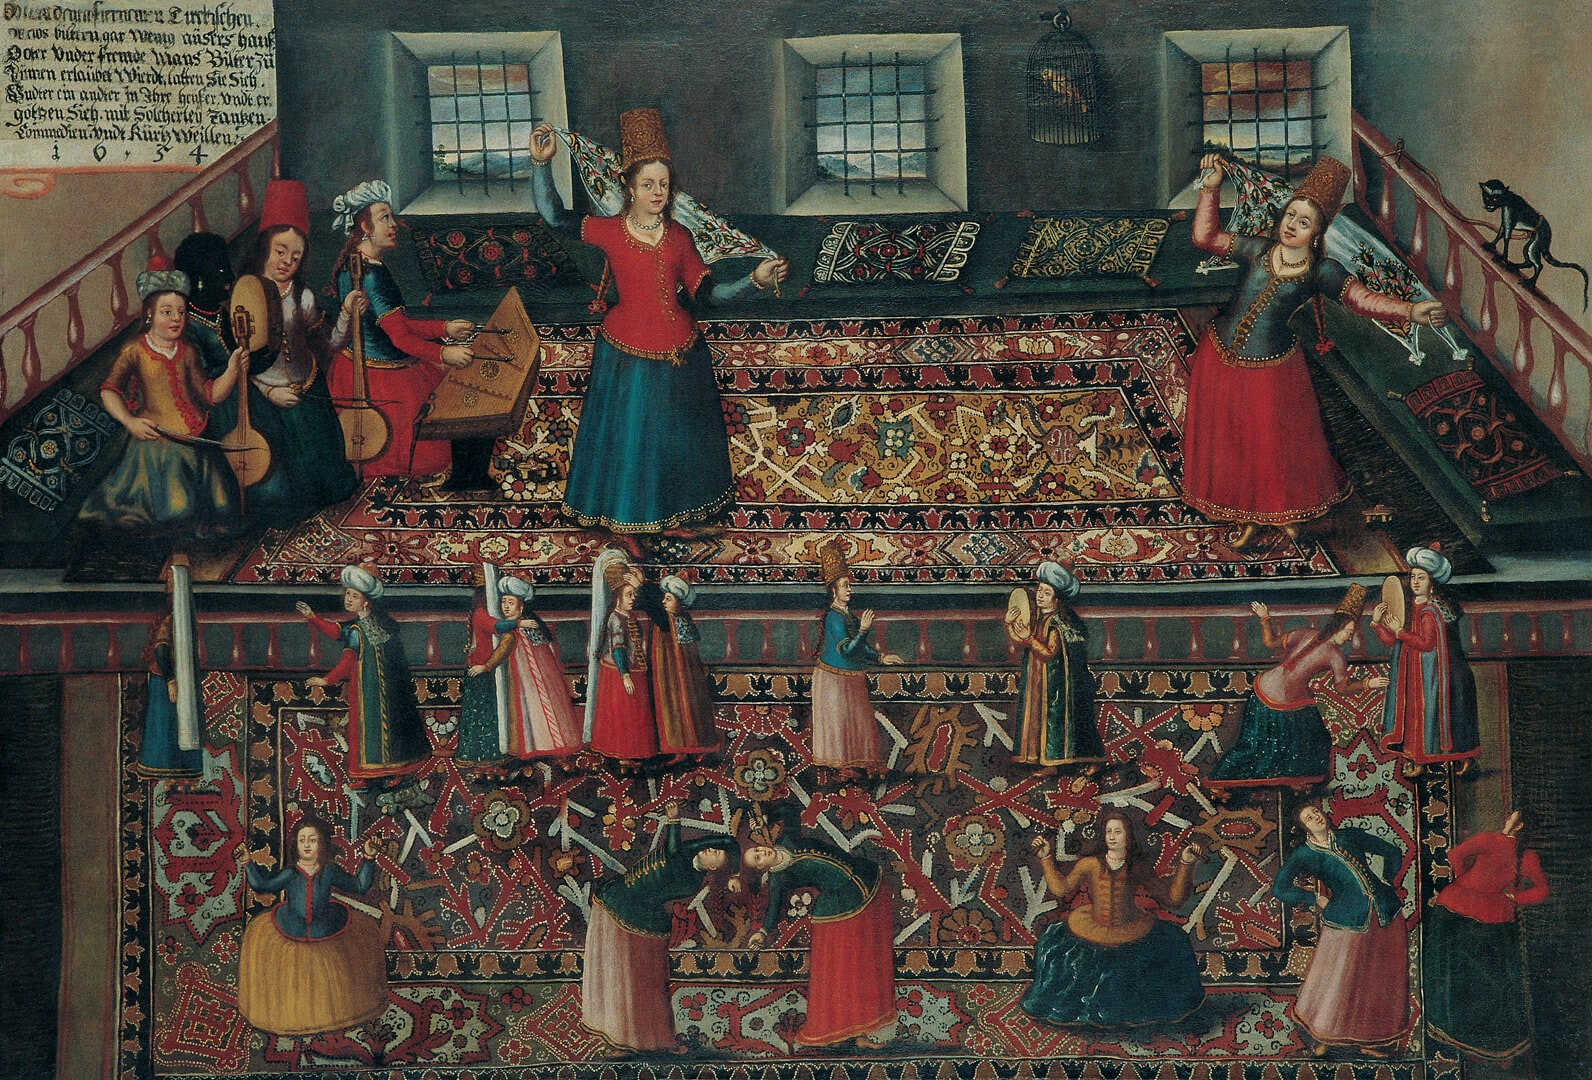 Ottoman Music and Entertainment from the Perspective of Painters